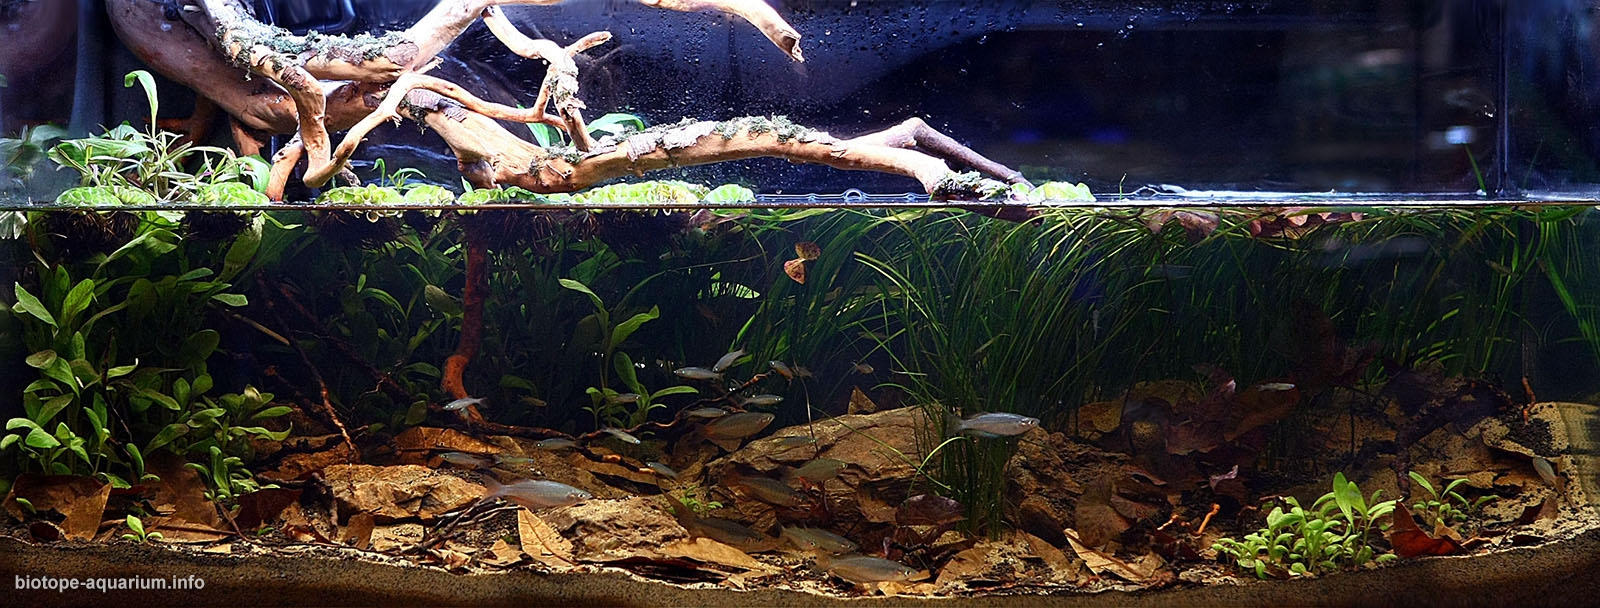 1600-Biotope-aquarium-design-contest-2014-AO